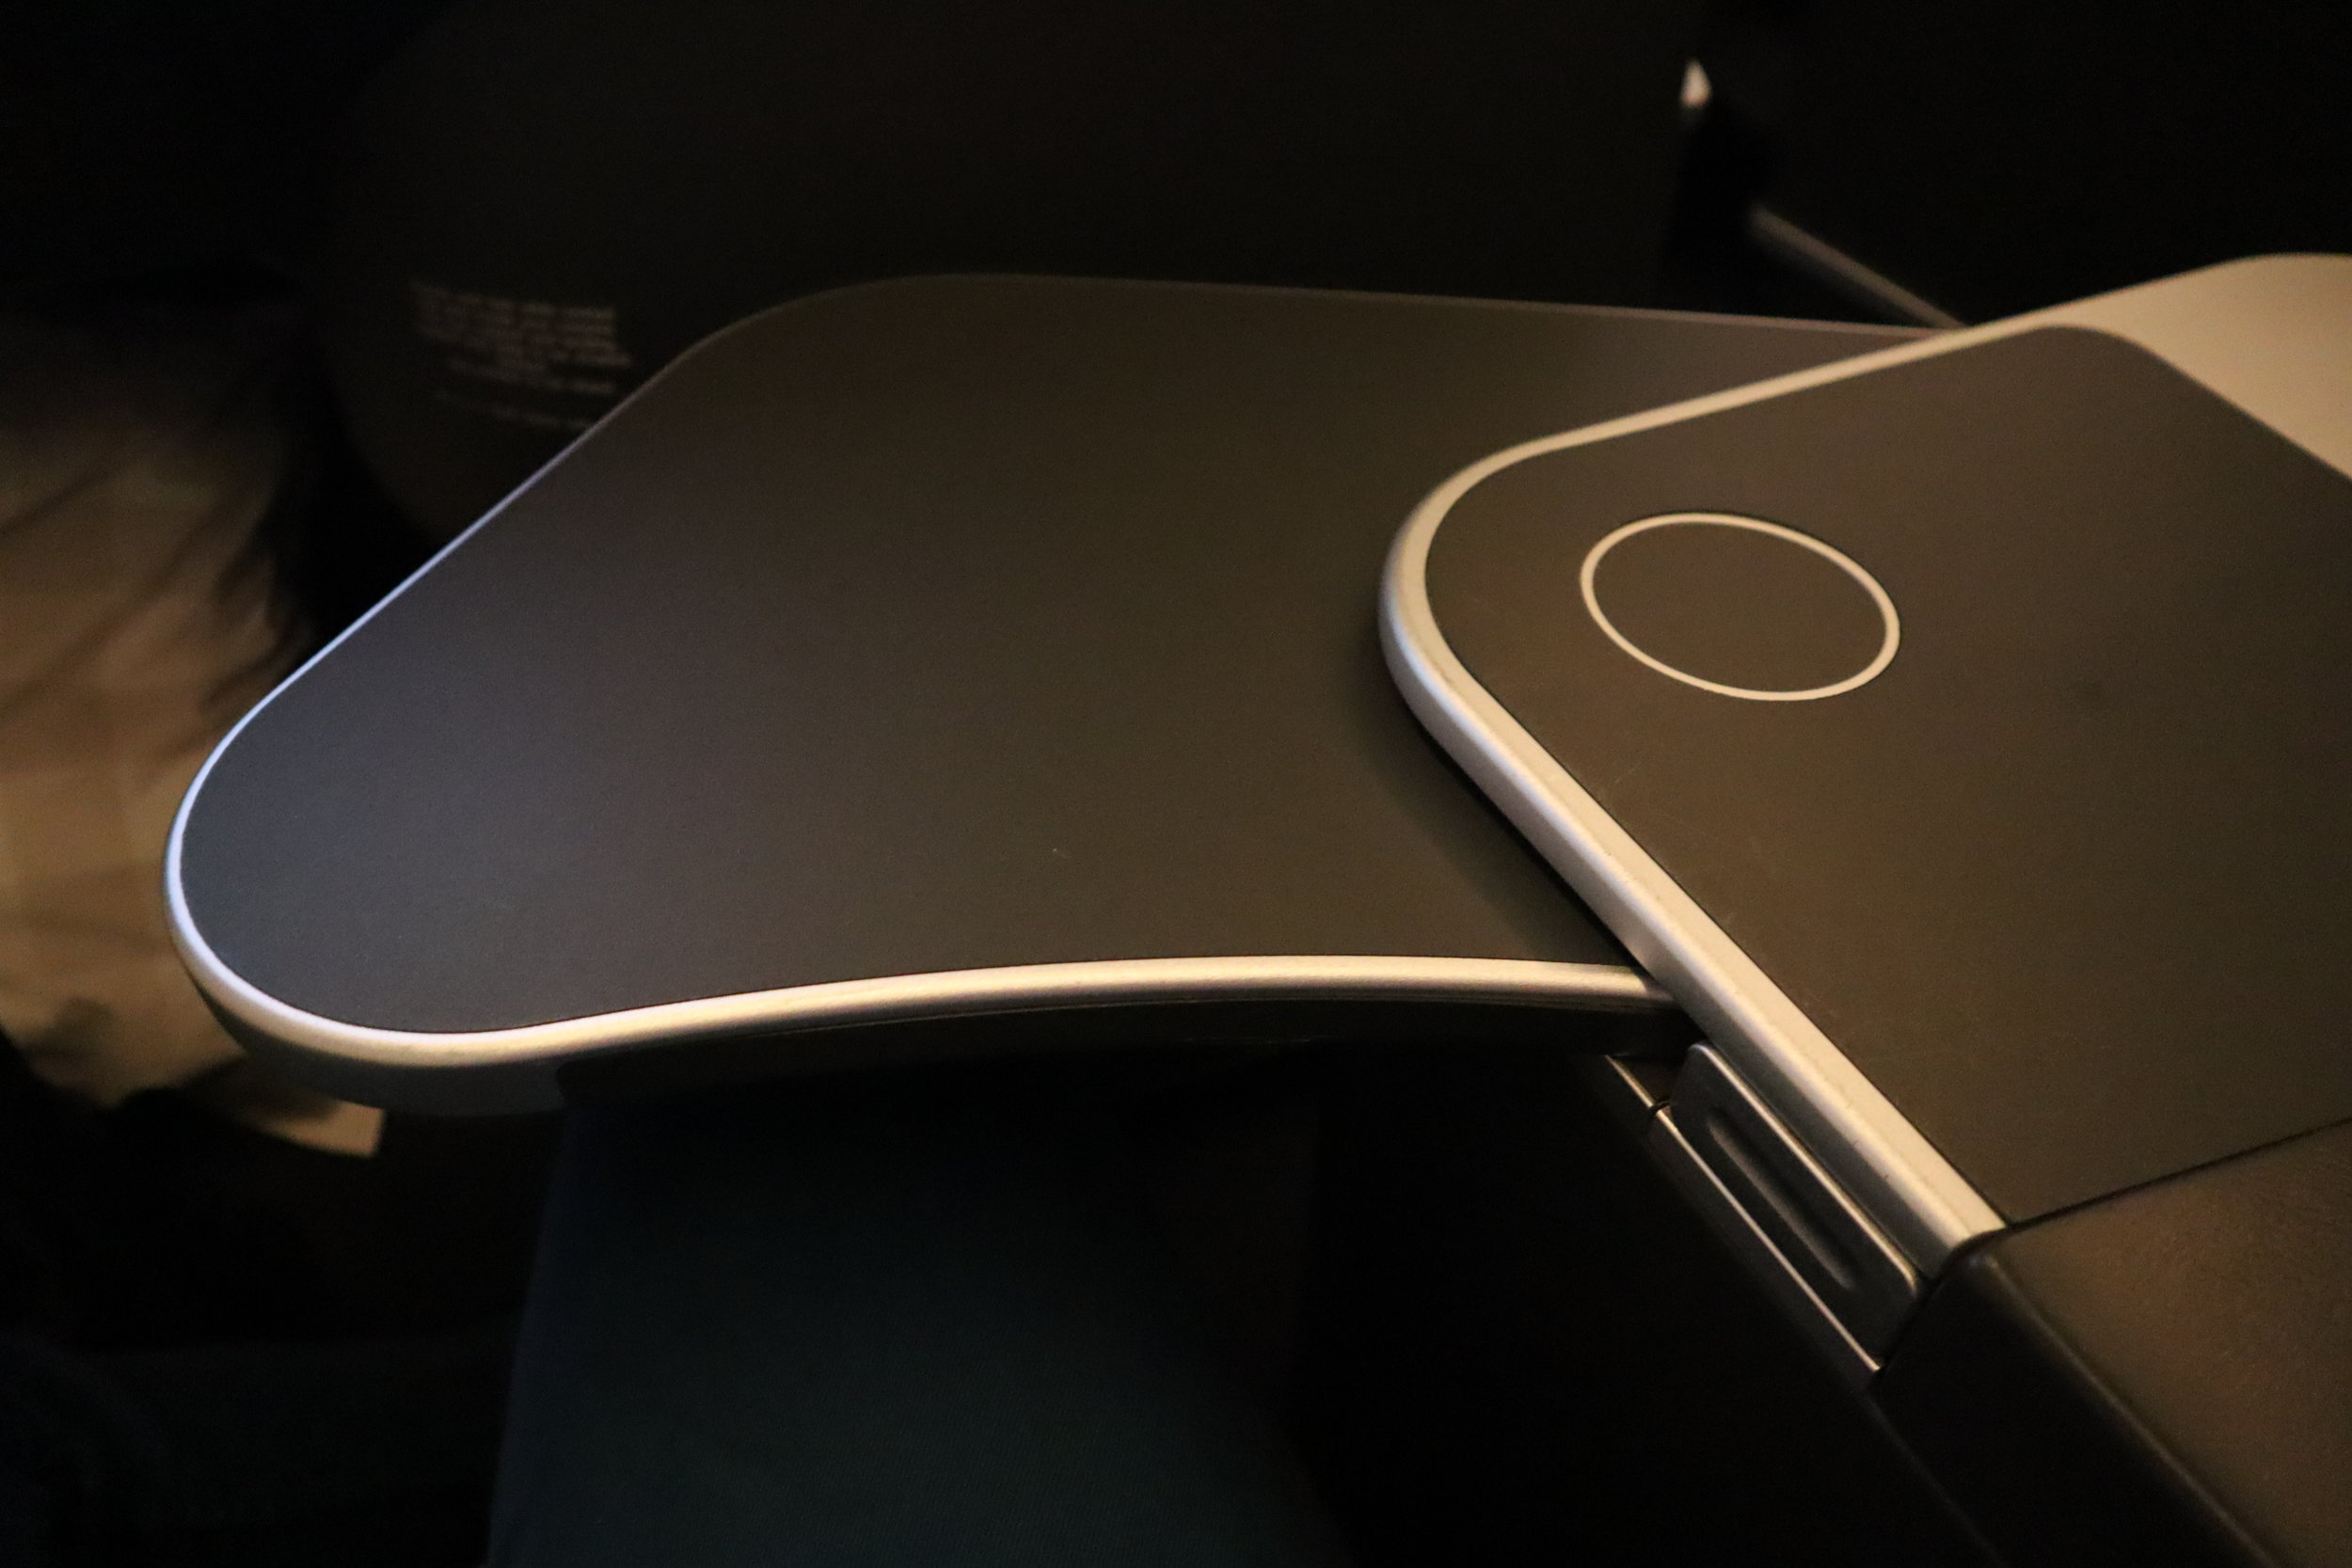 SAS business class – Tray table